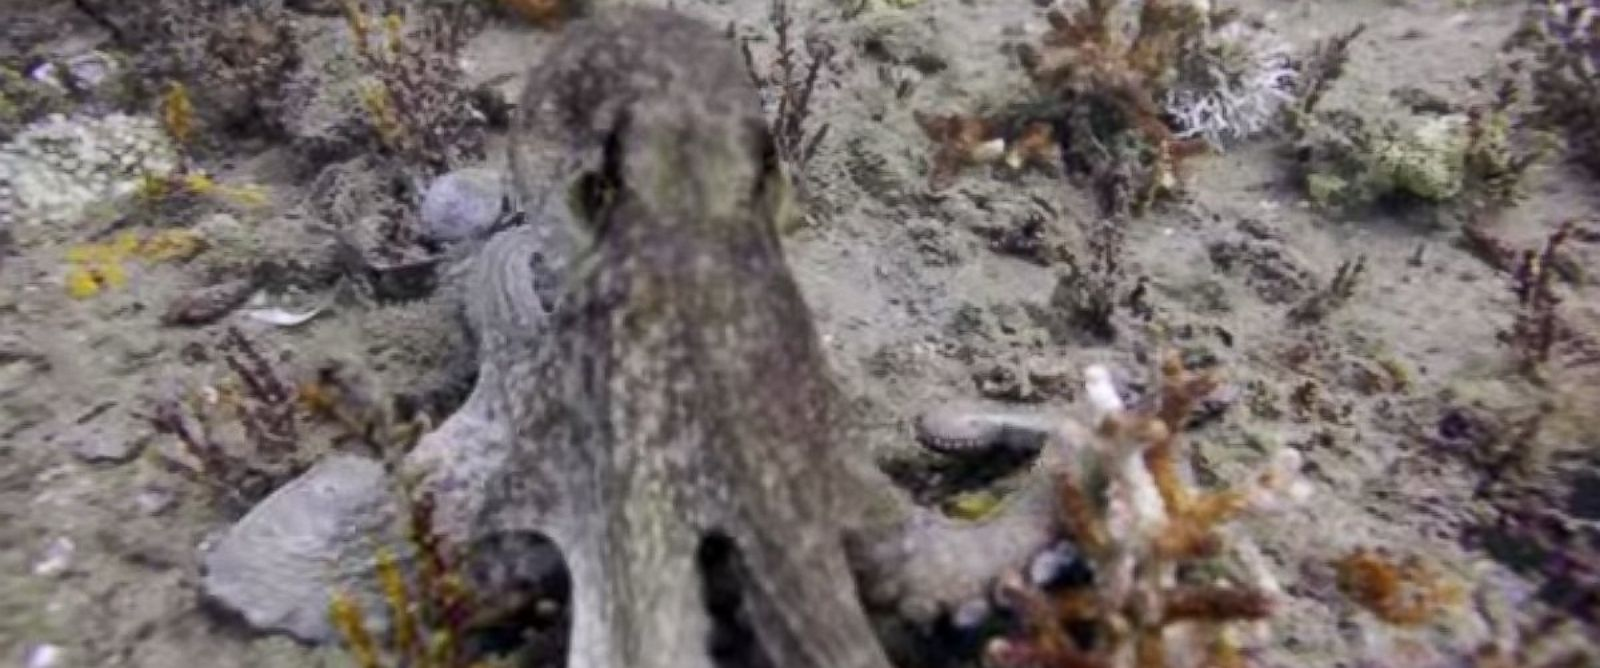 PHOTO: Joe Kistel was filming an artificial reef underwater when he came across a curious octopus.